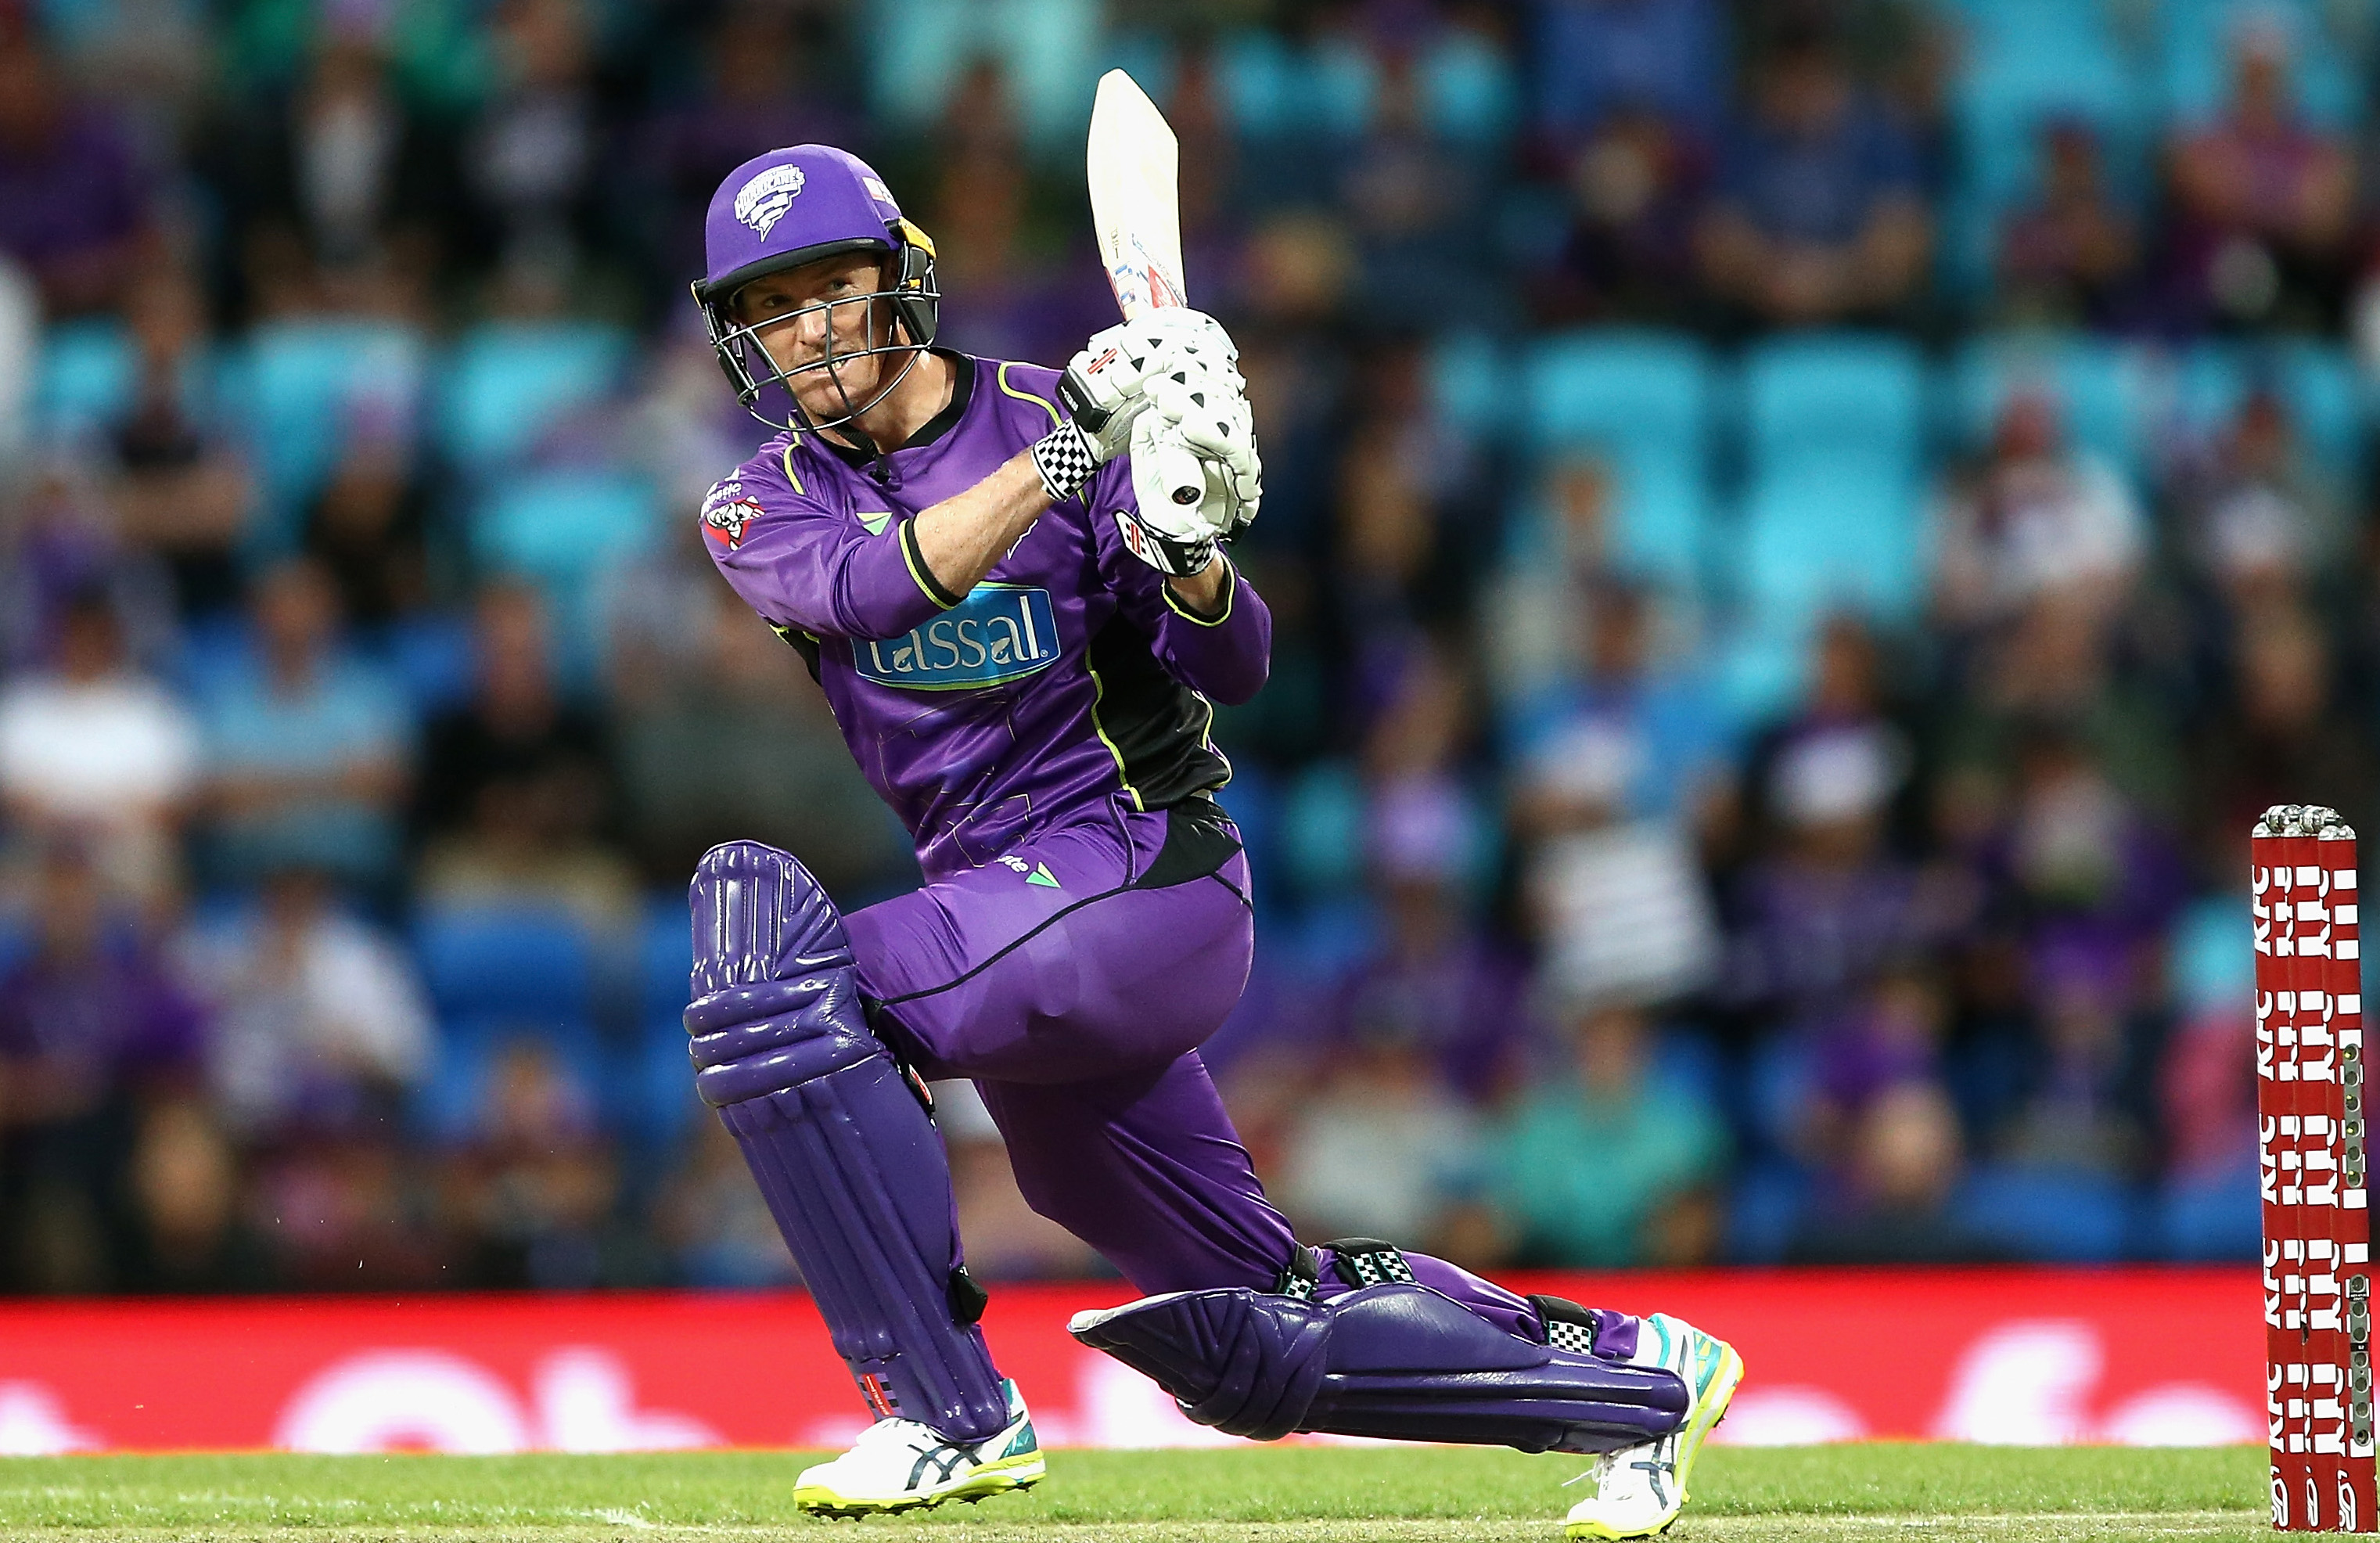 Hurricanes set Thunder 190 in BBL